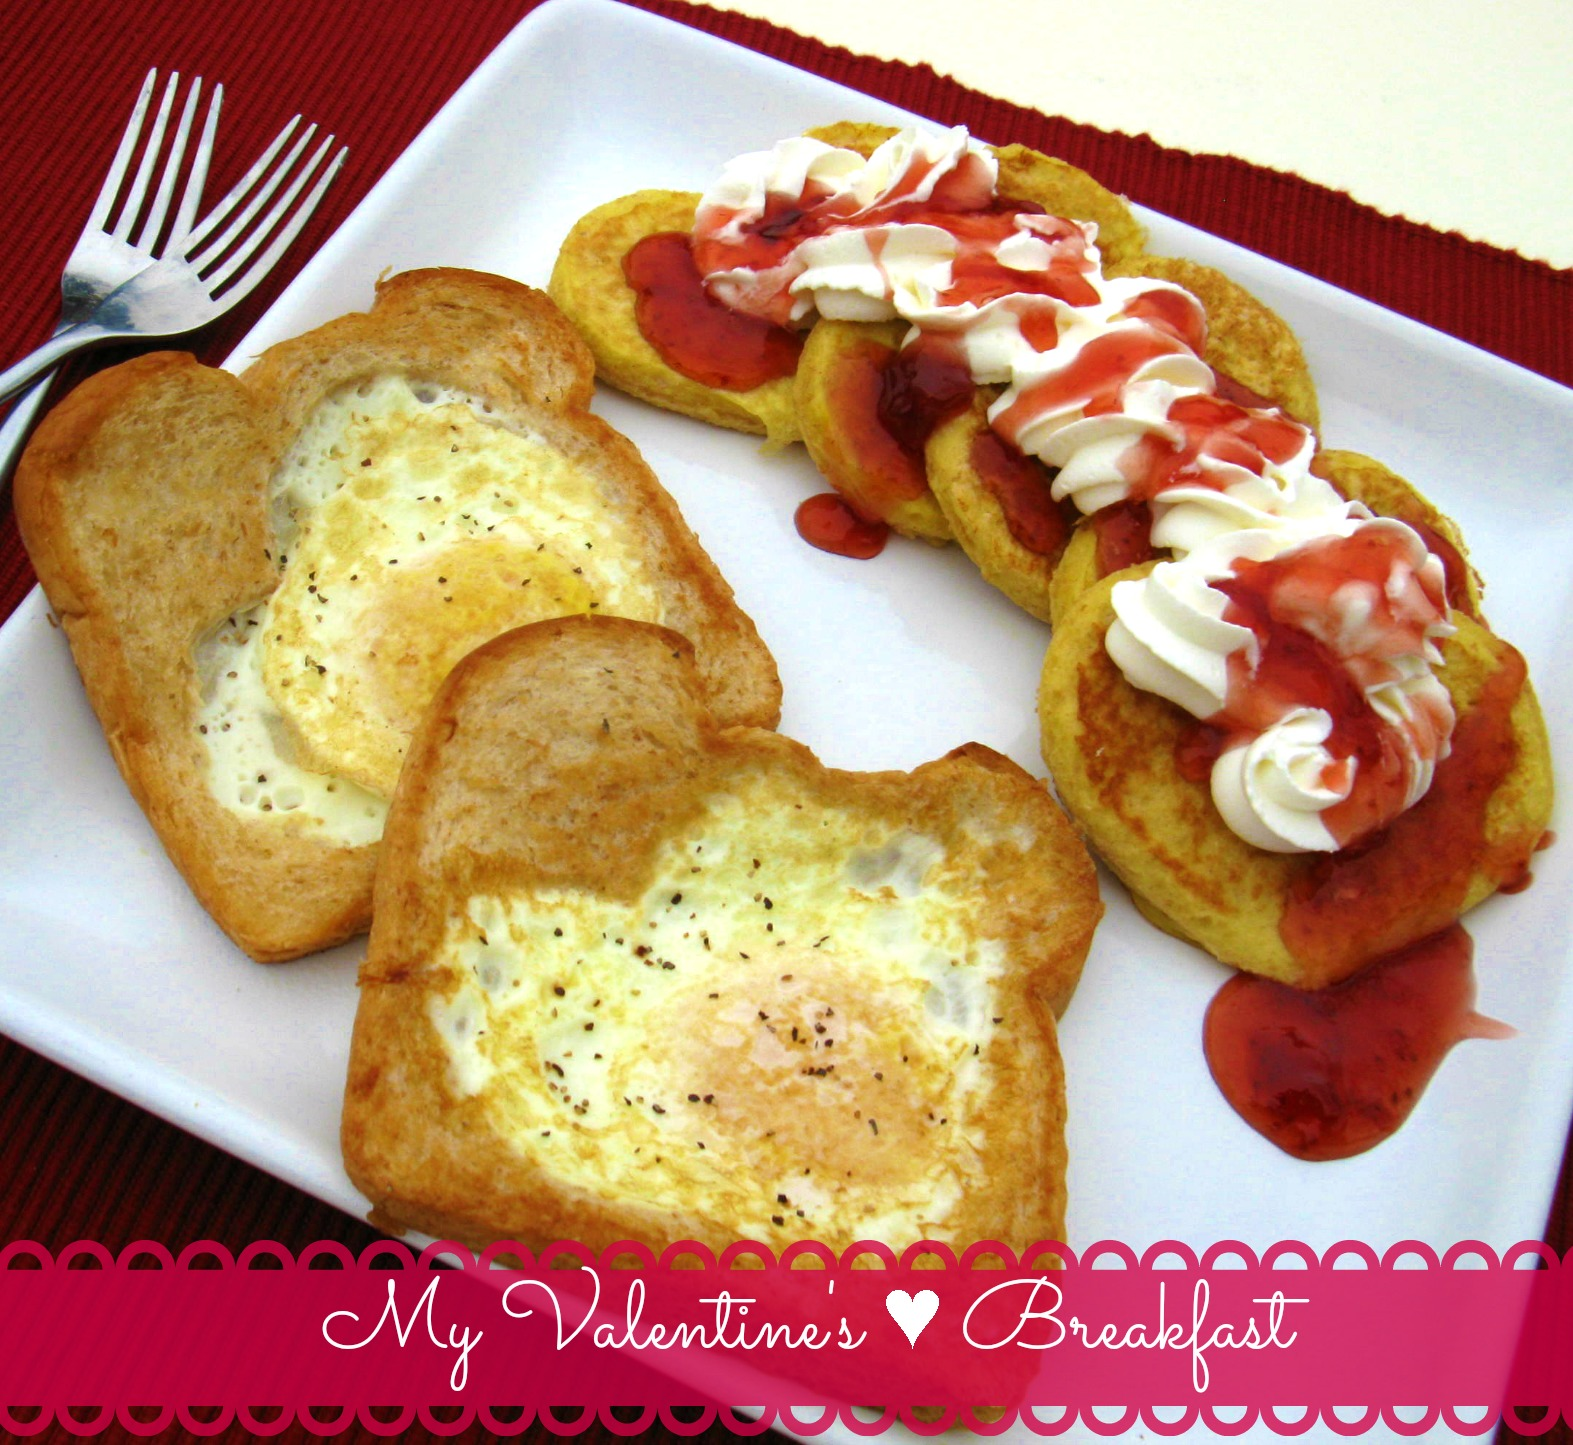 Schön Wow Your Valentine With This ~ Valentineu0027s Day Breakfast For Two!